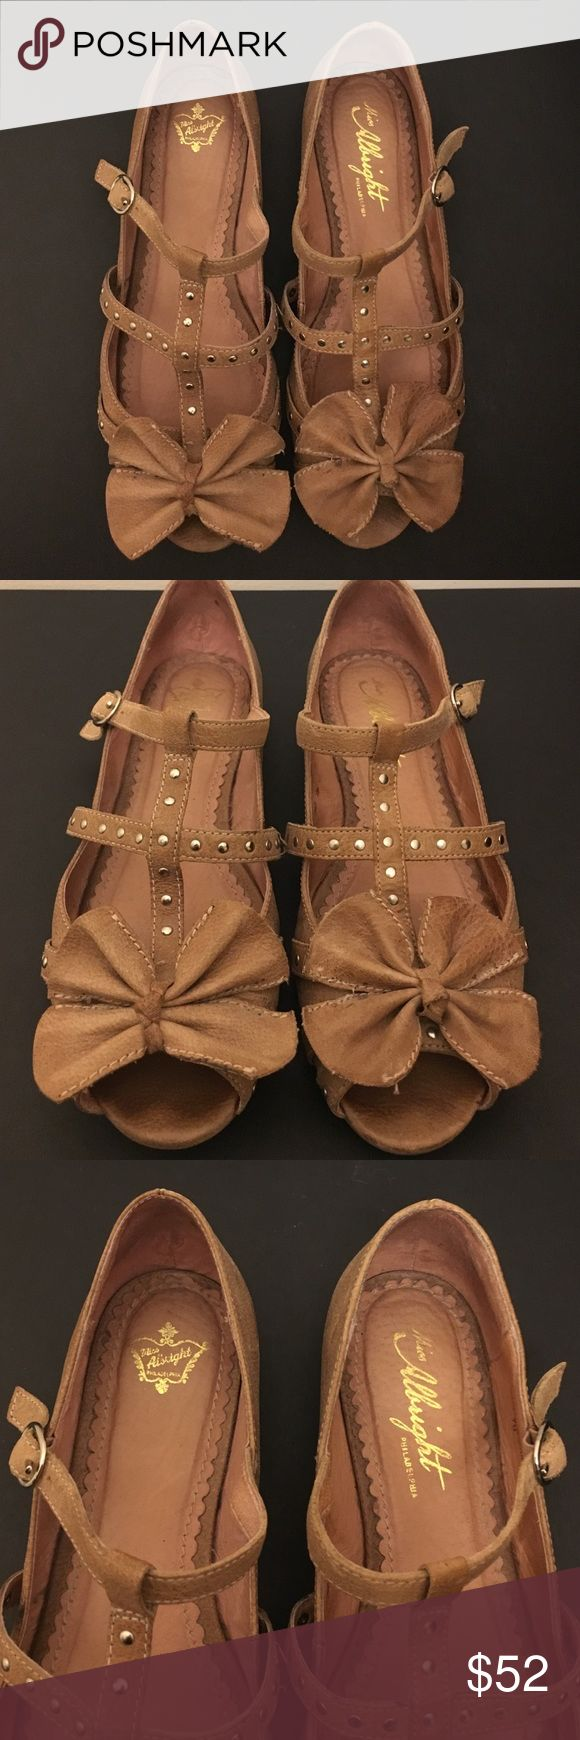 Miss Albright gladiator flats Size 7 tan leather gladiator flat. Peep toe with bow in front. Great condition! Miss Albright  Shoes Flats & Loafers